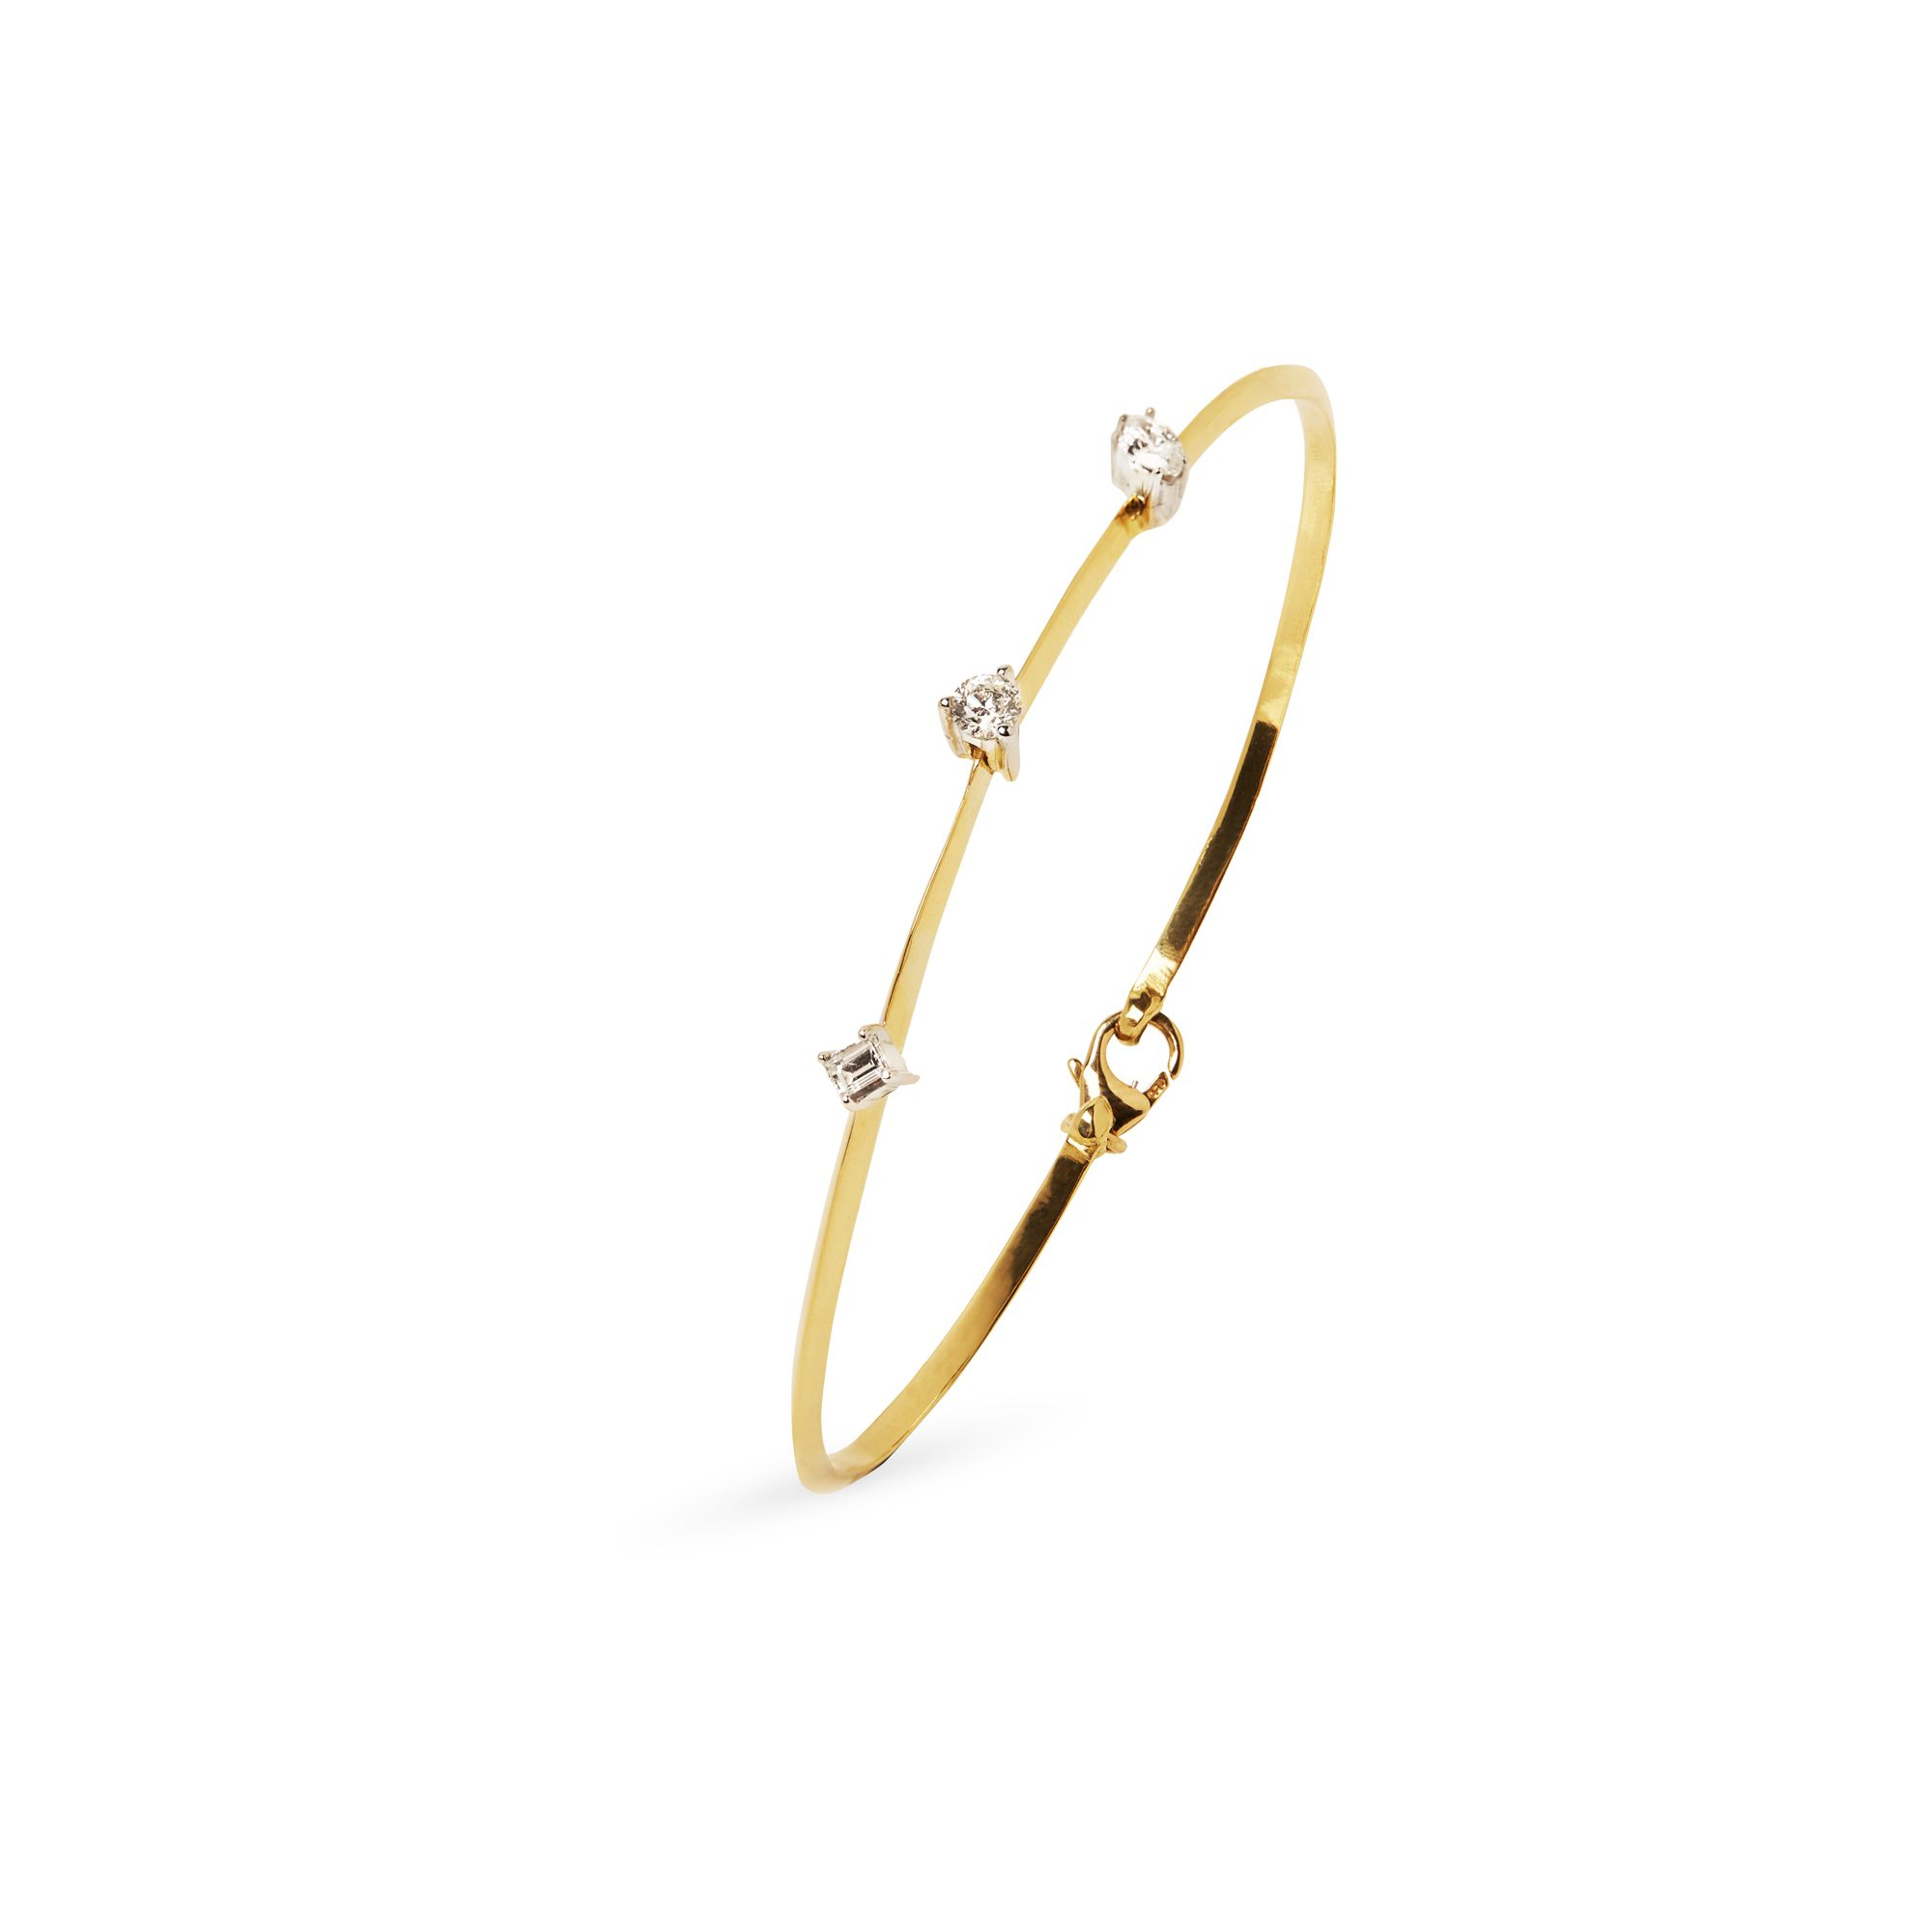 Yellow gold 'Balance' Bracelet Bracelet in yellow gold and diamonds